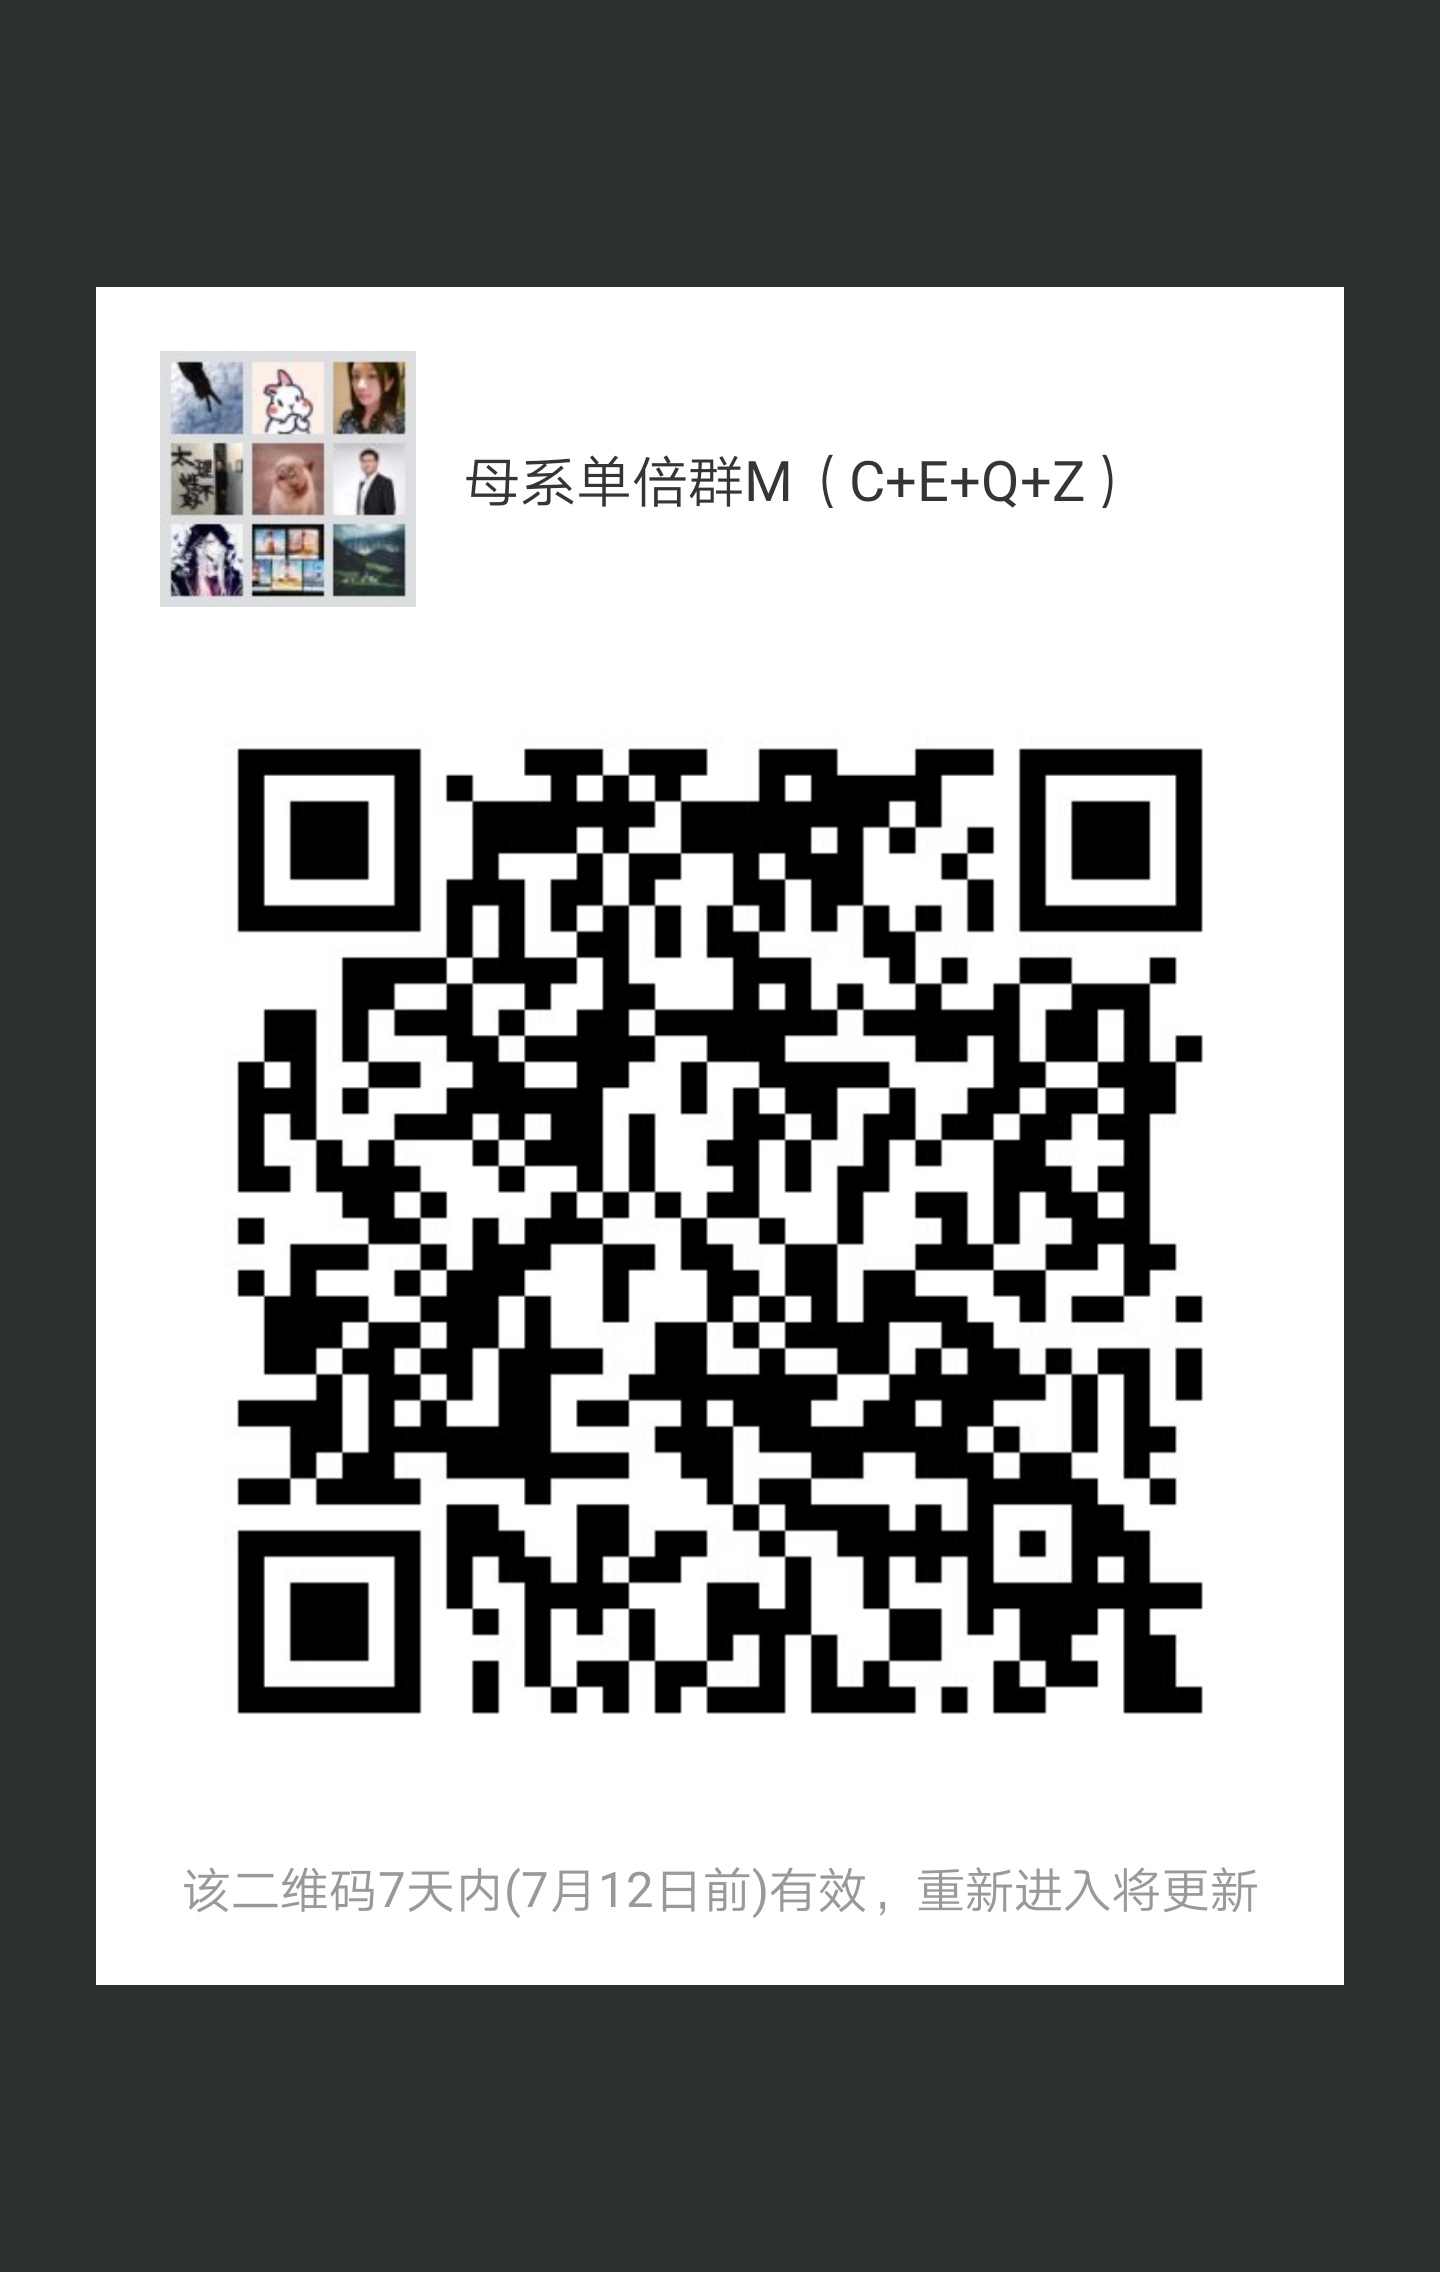 mmqrcode1530724450653.png